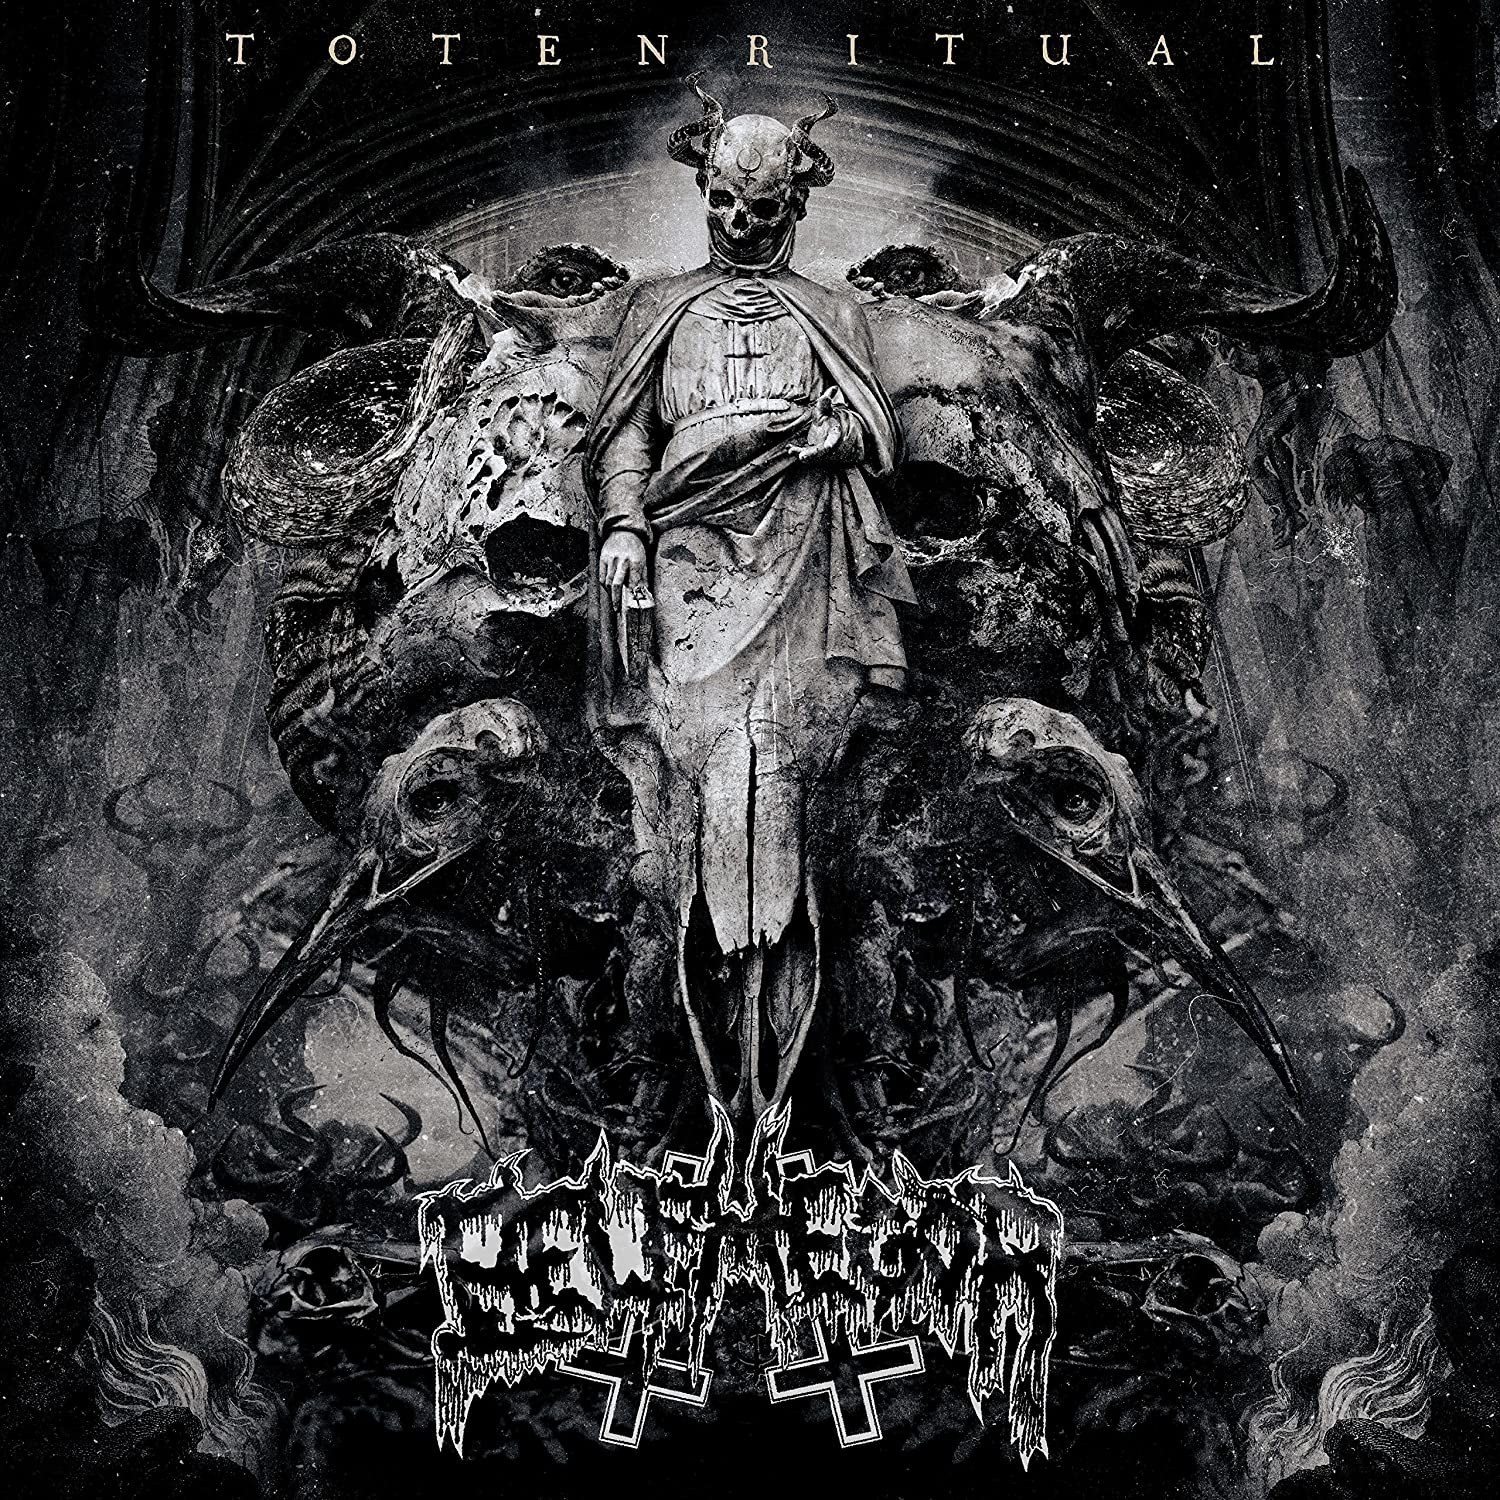 Review for Belphegor - Totenritual